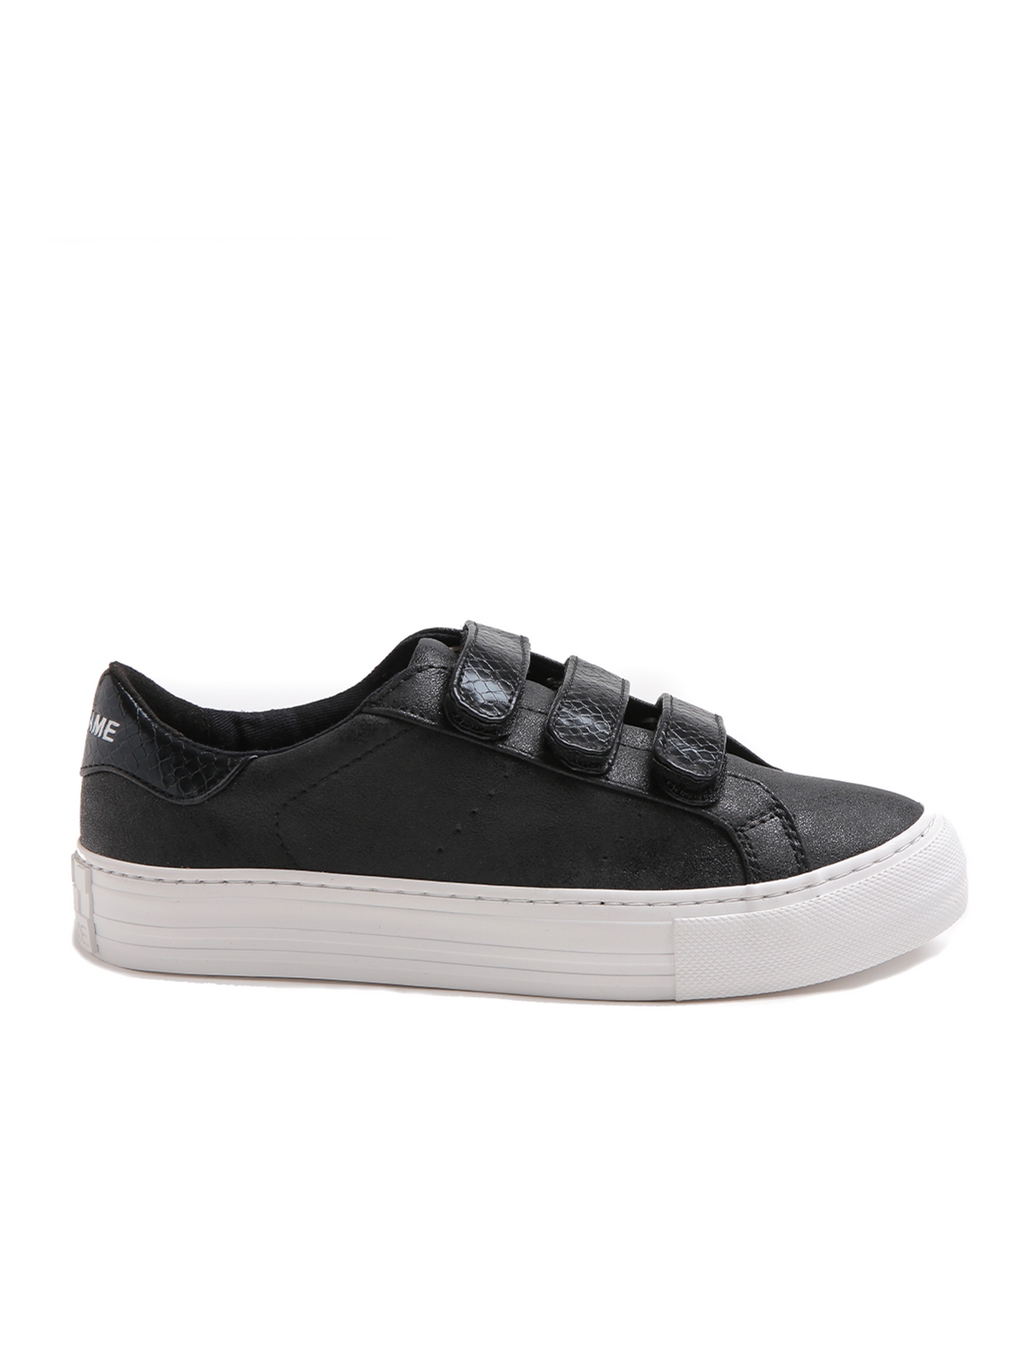 No Name Arcade Strap Shoes - Reptile Black on Black